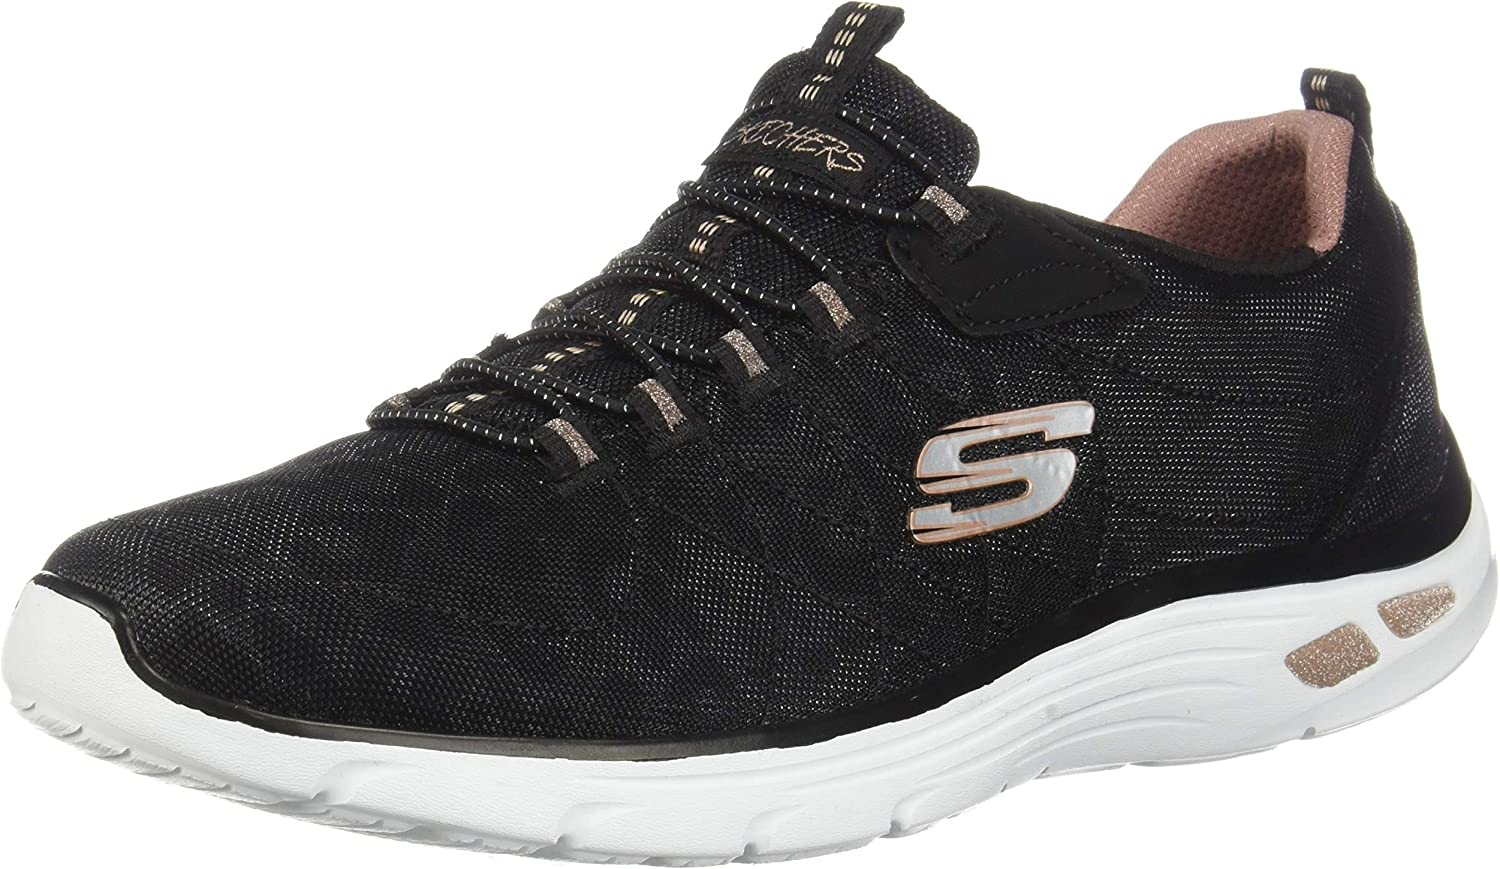 Skechers Womens Empire D'Lux-Spotted Sneakers